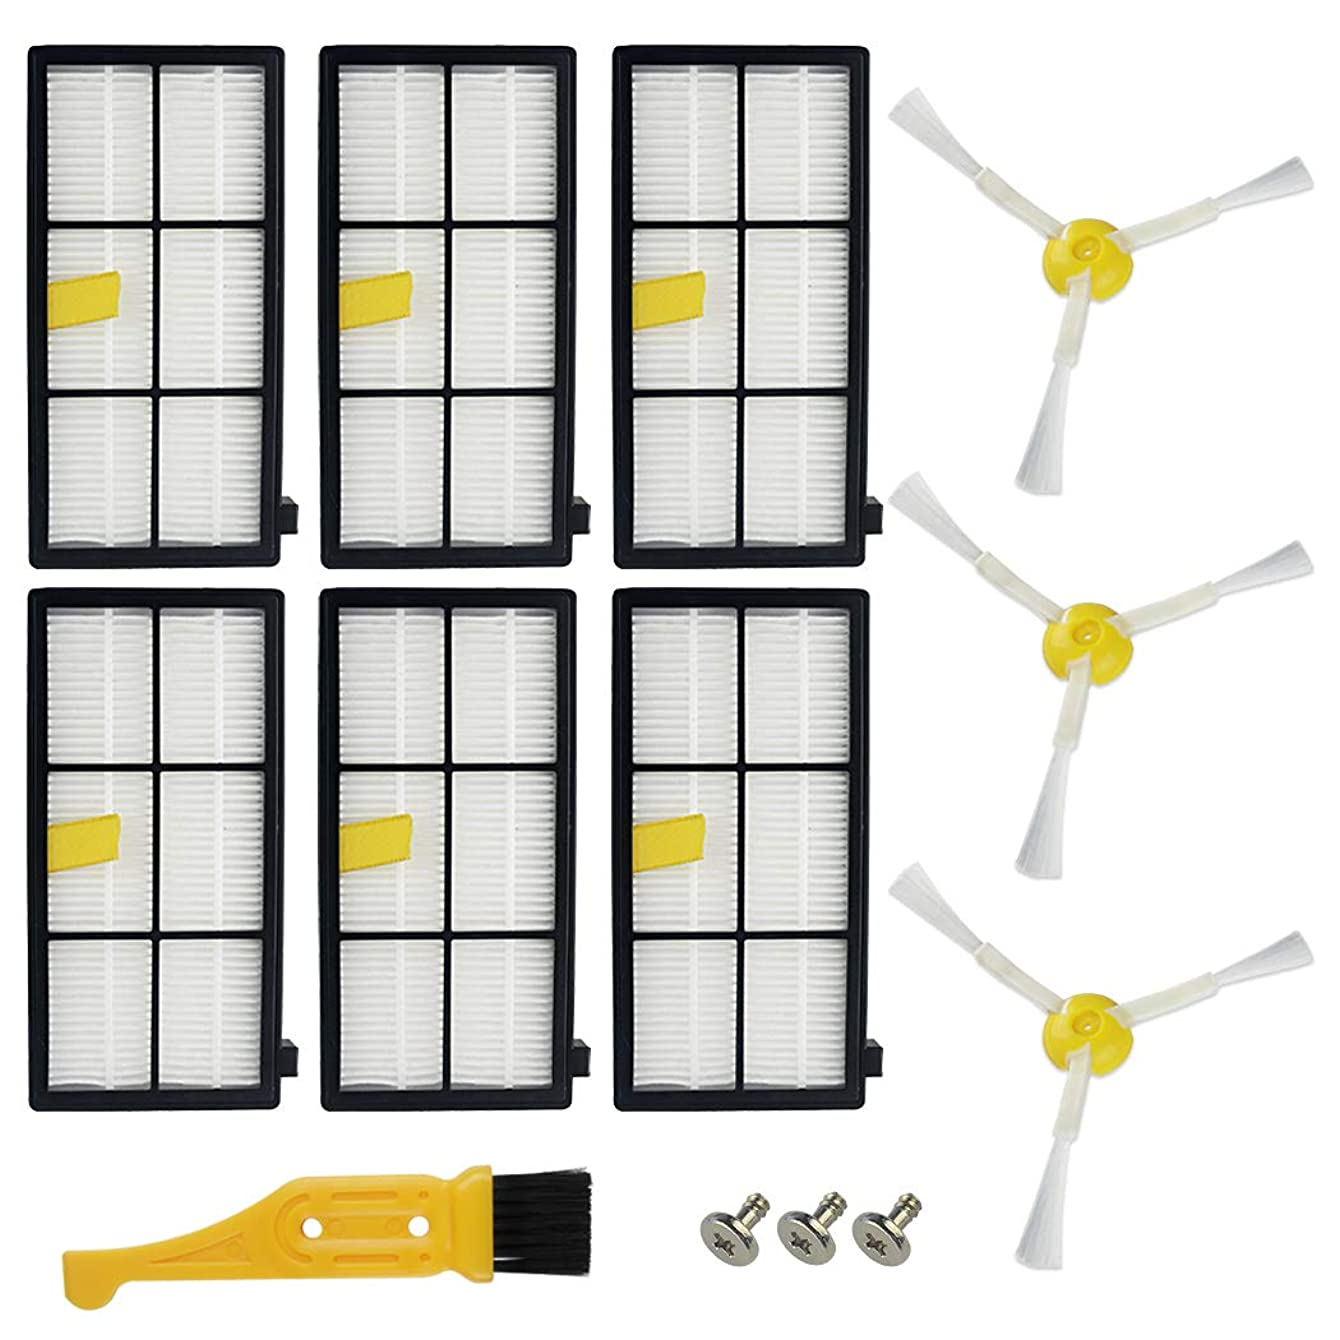 Ugardo Replacement Parts for iRobot Roomba 800 900 Series 800 805 850 860 861 866 870 871 880 890 960 961 964 980 981 985 Vacuum Cleaner Accessories 6 Filters & 3 Side Brushes